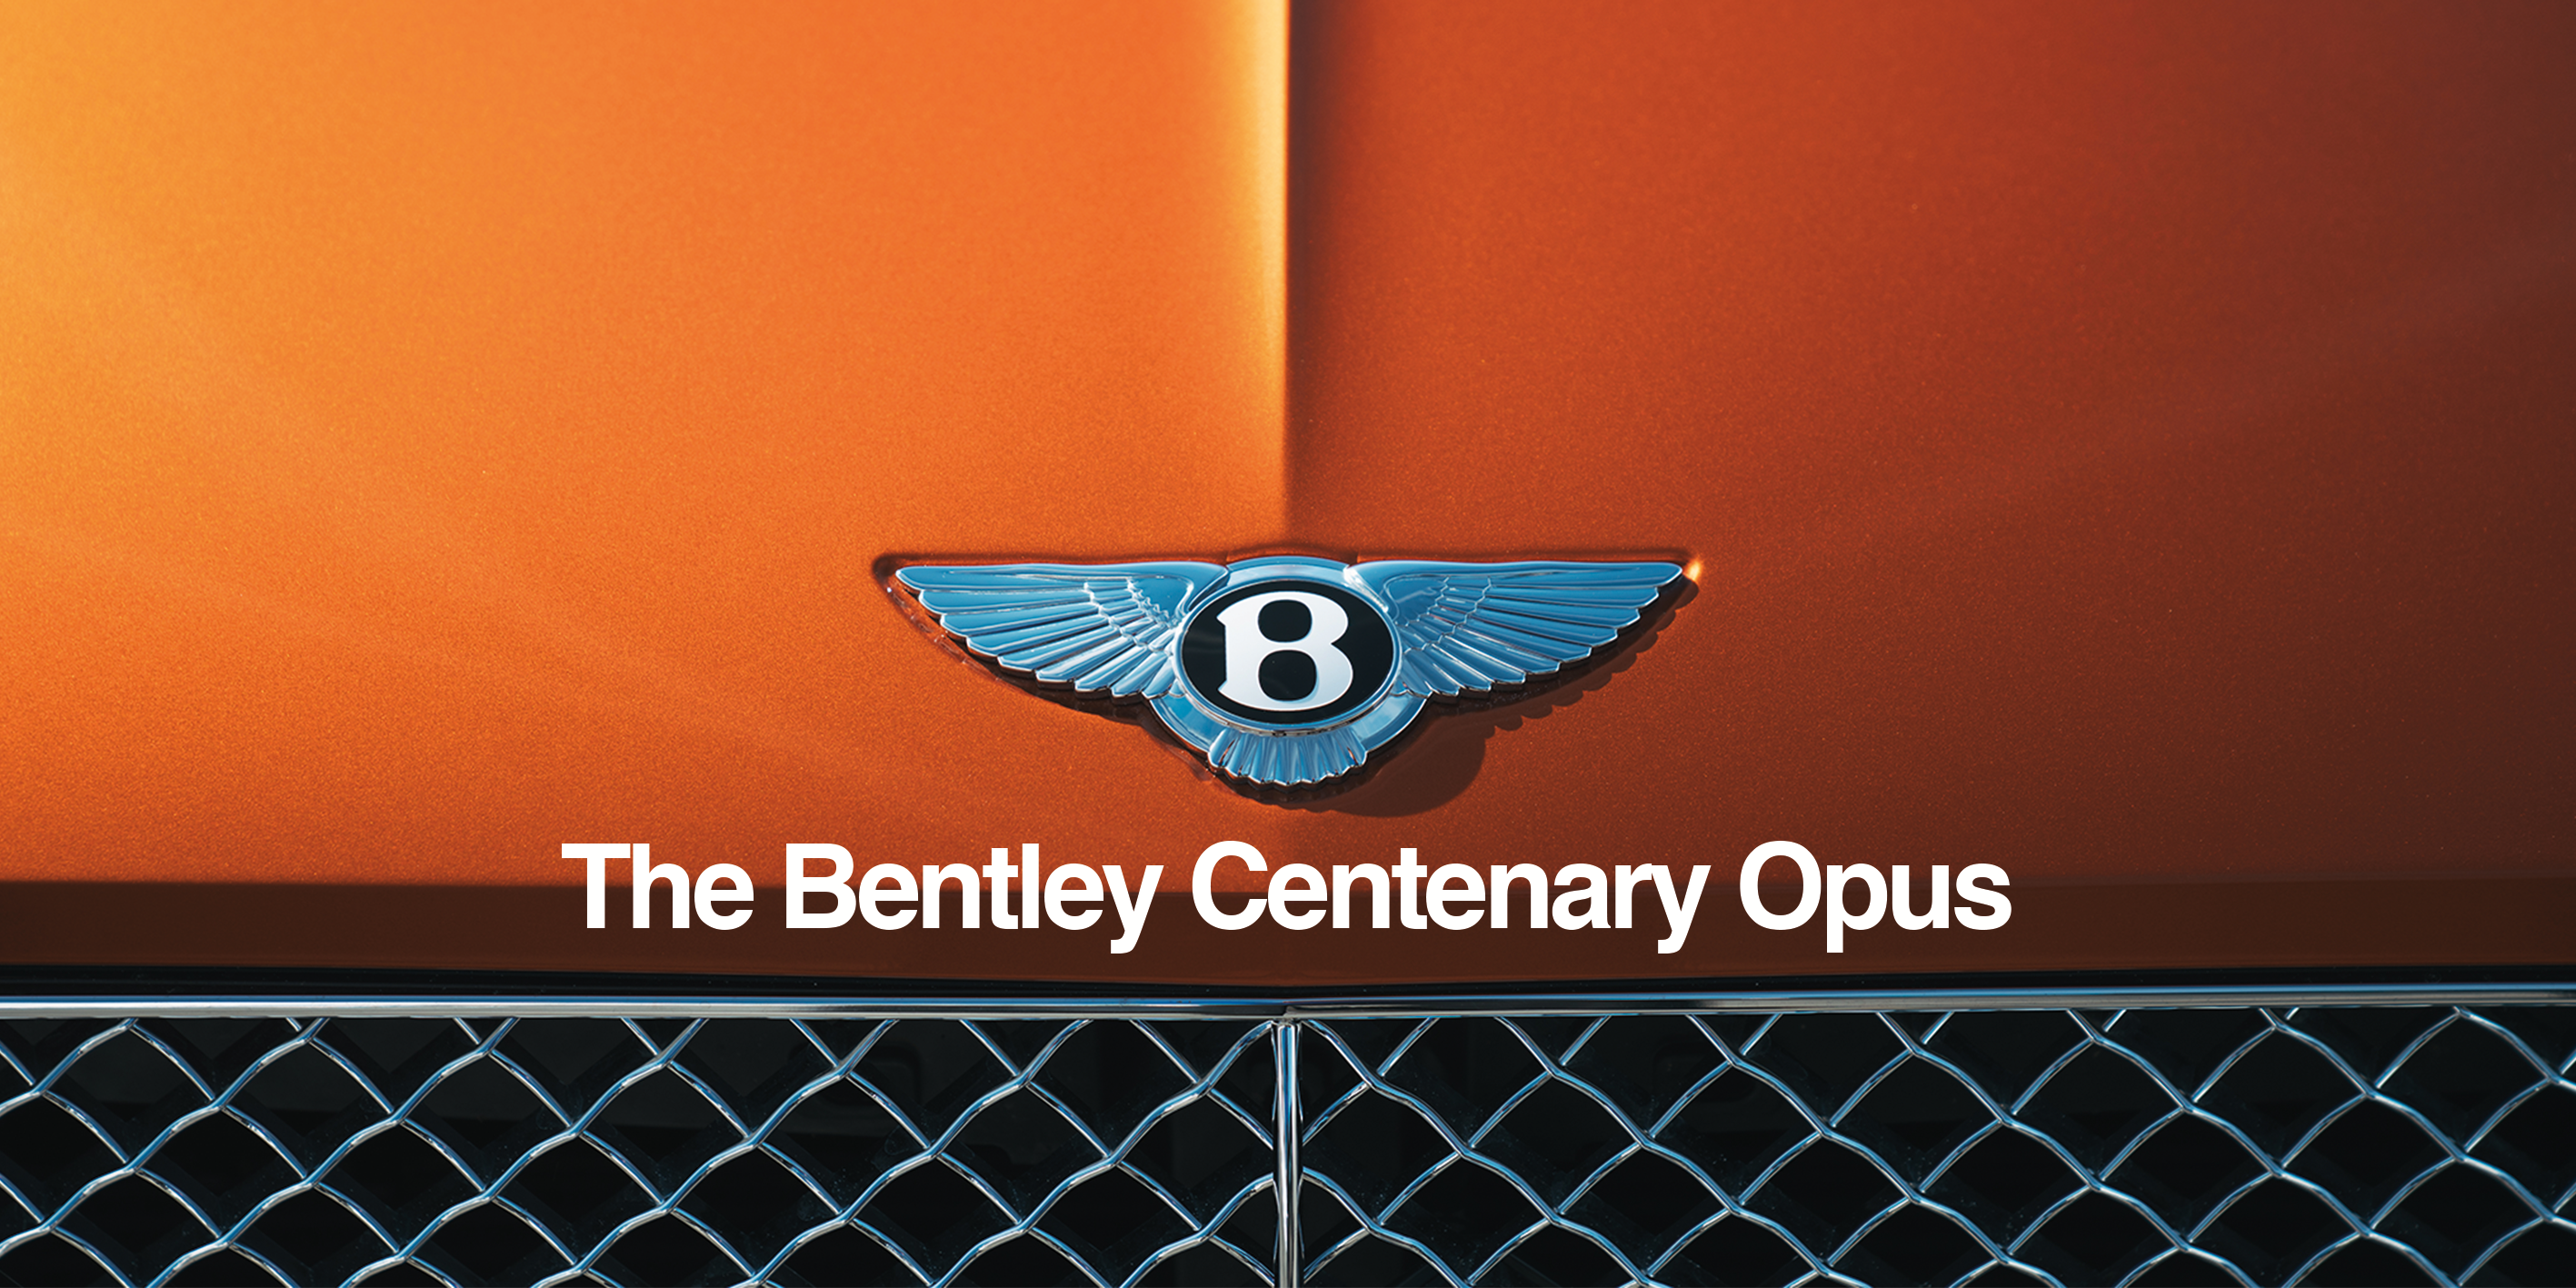 BENTLEY CENTENARY OPUS